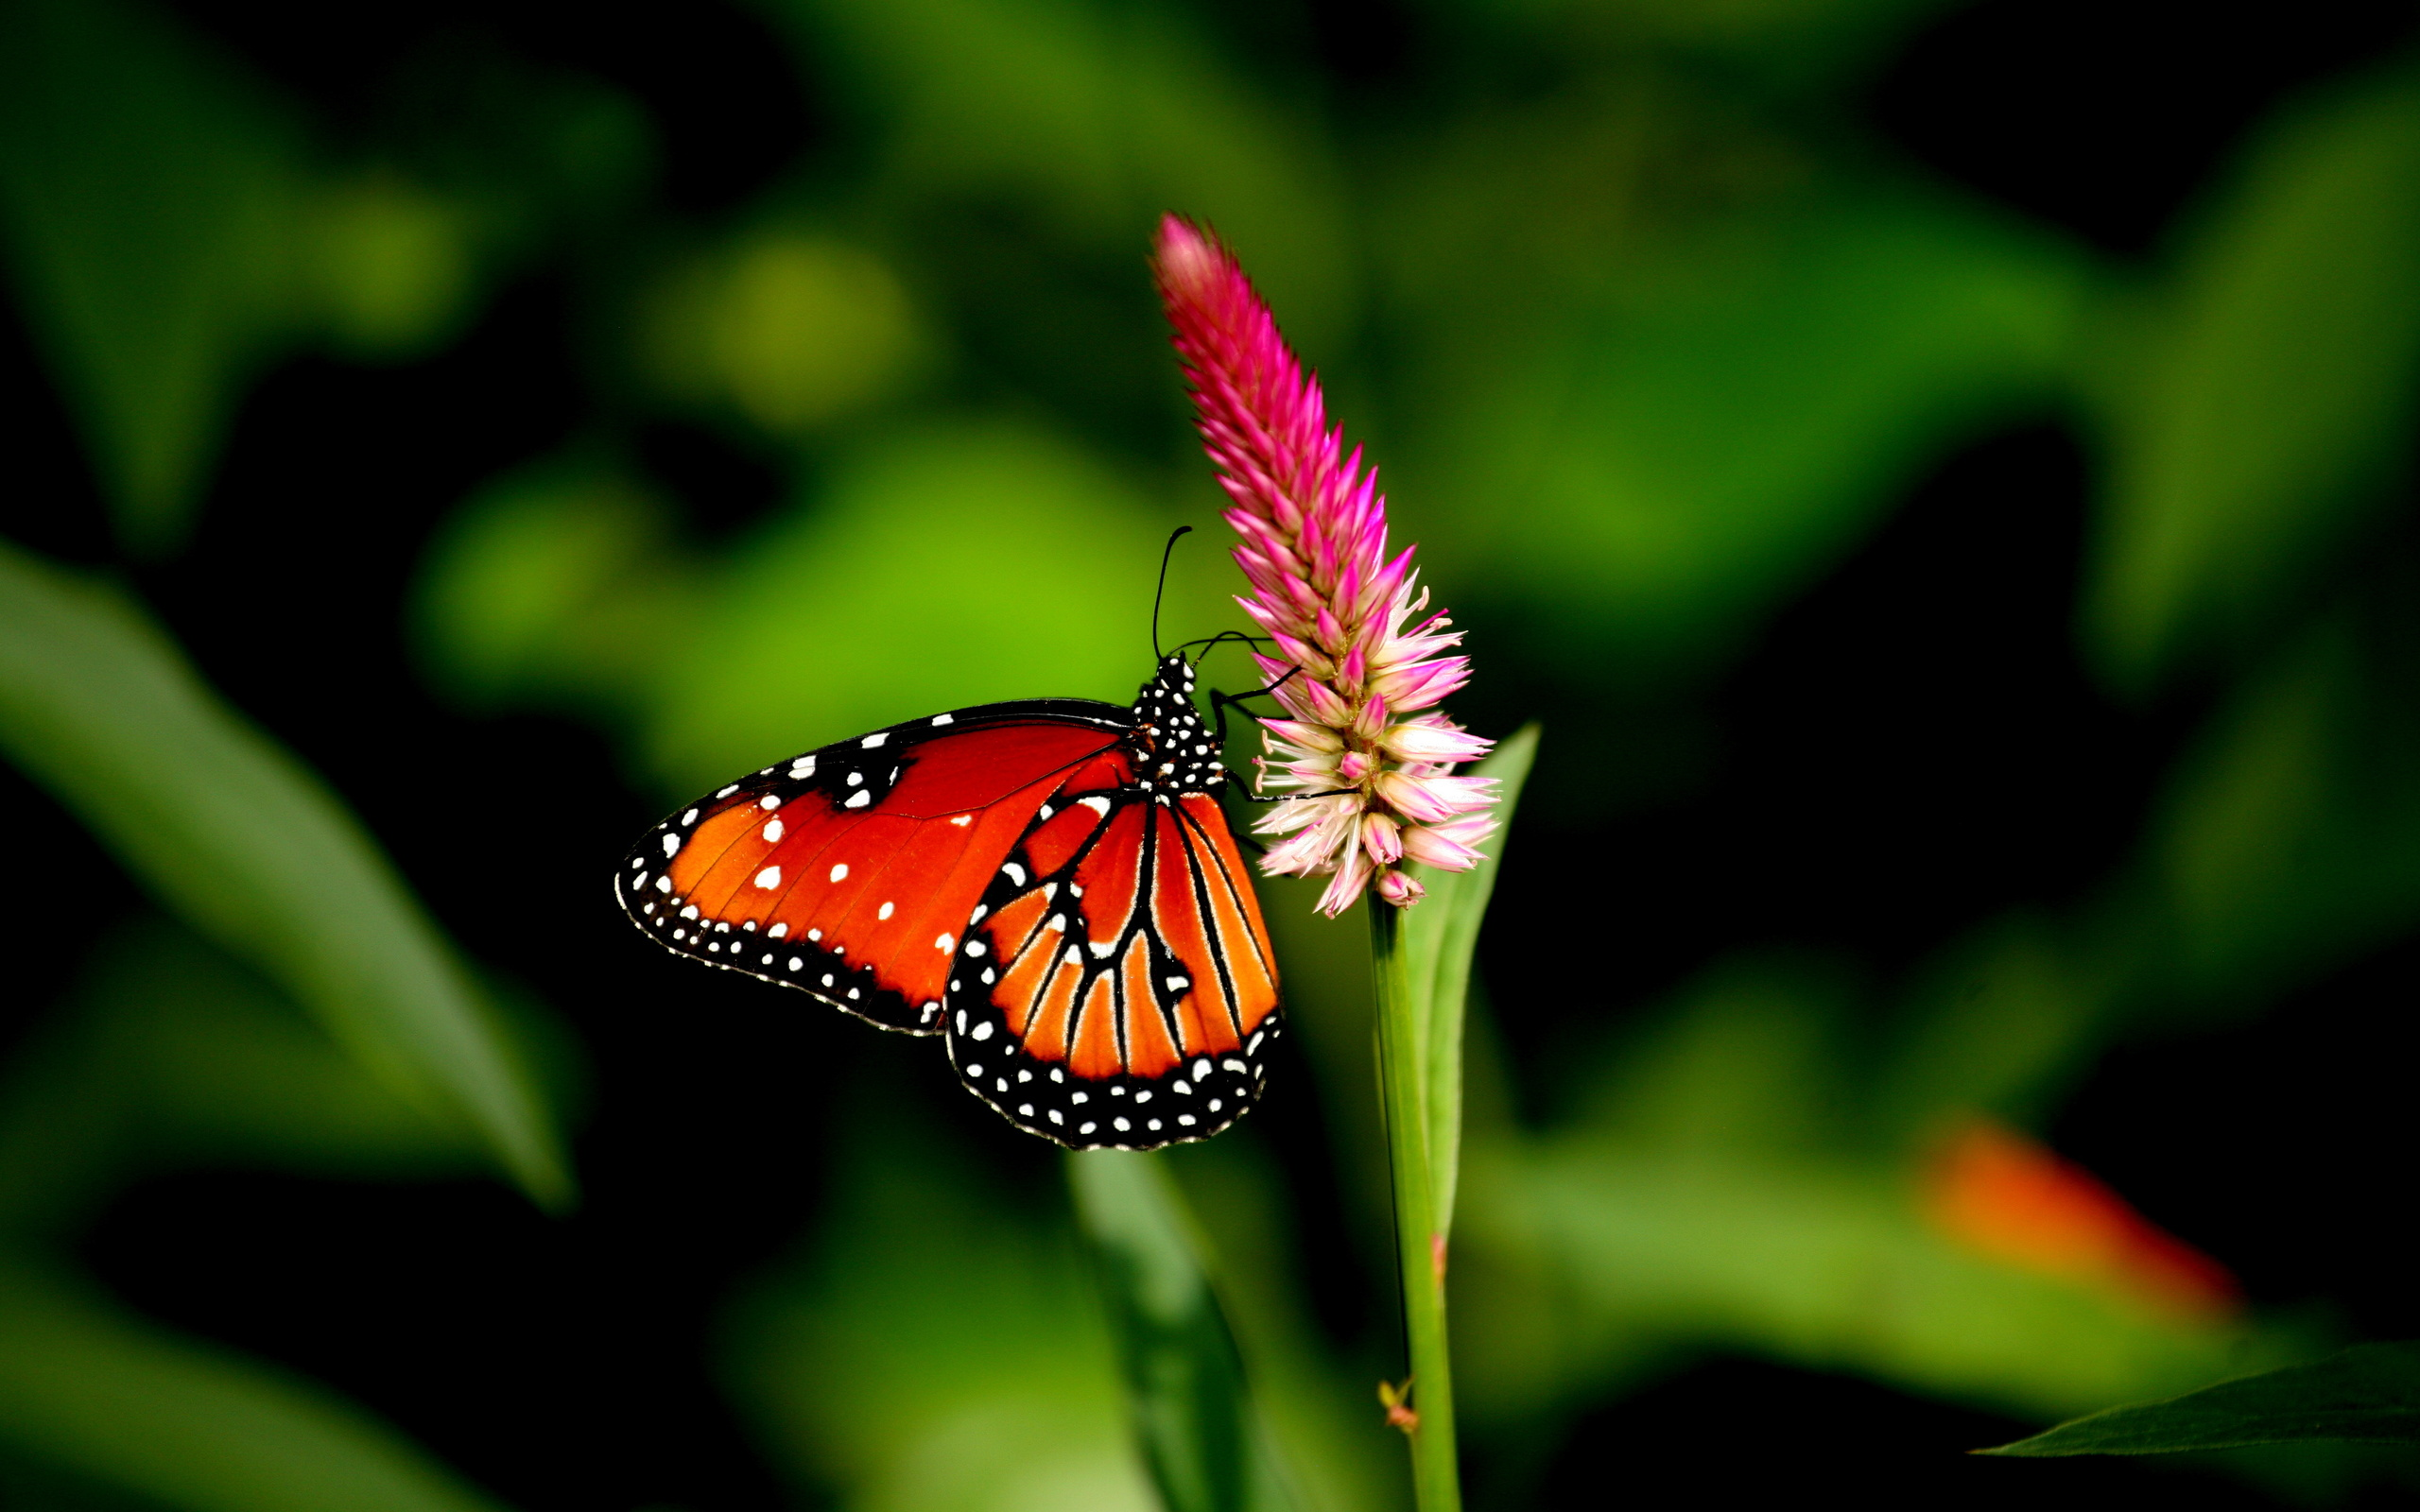 butterfly hd images